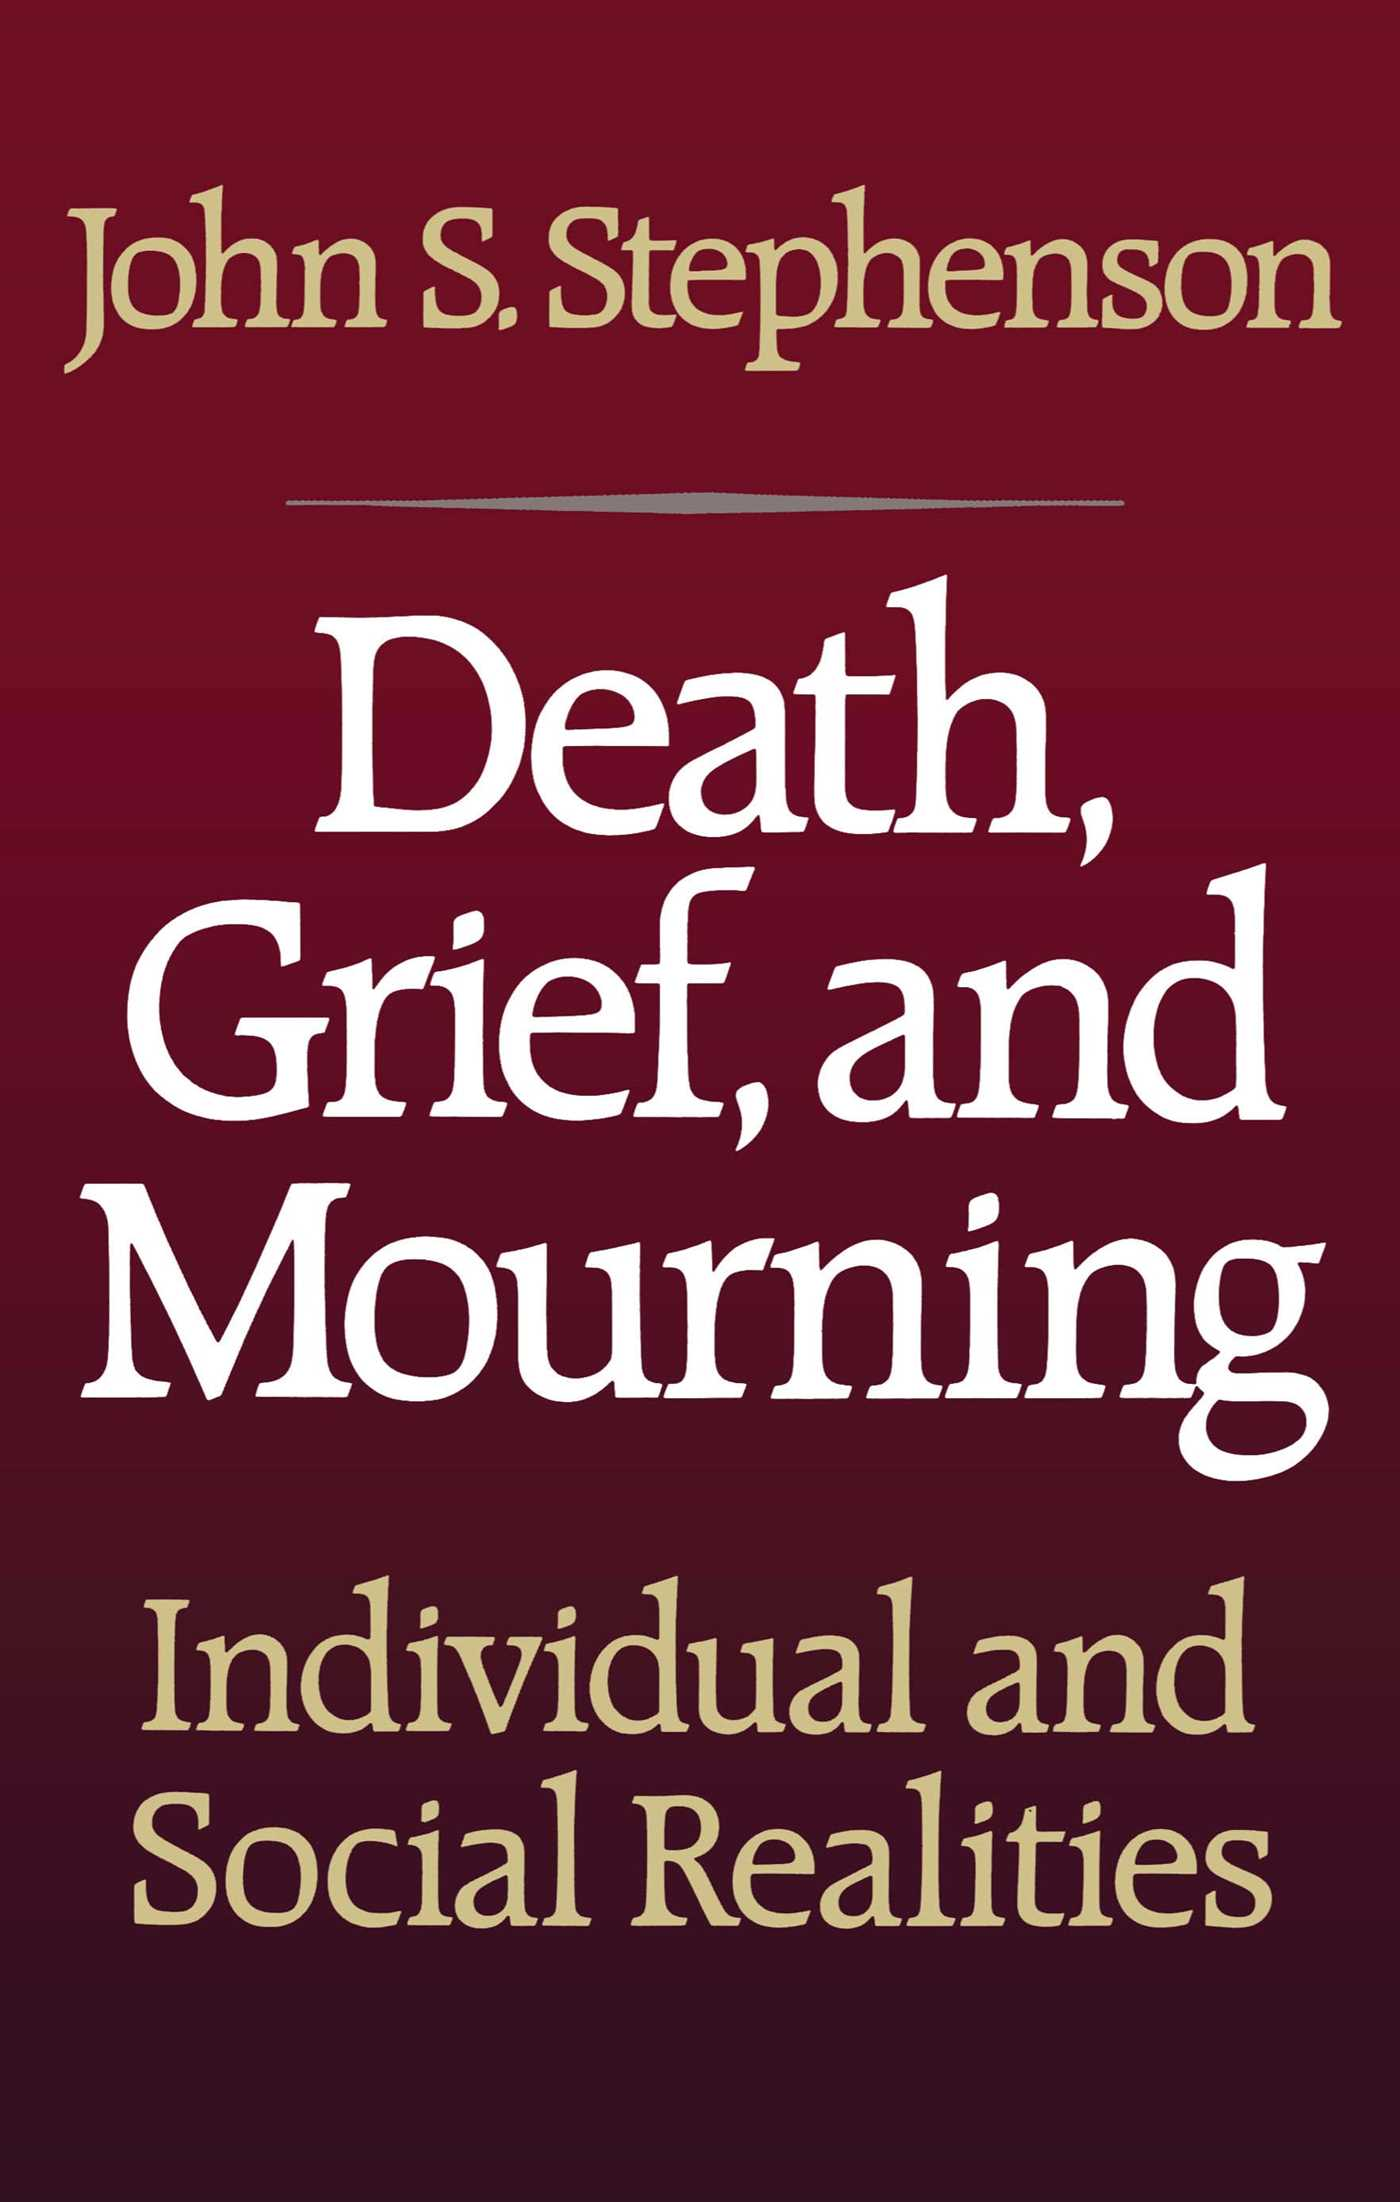 Death grief and mourning 9781439137185 hr